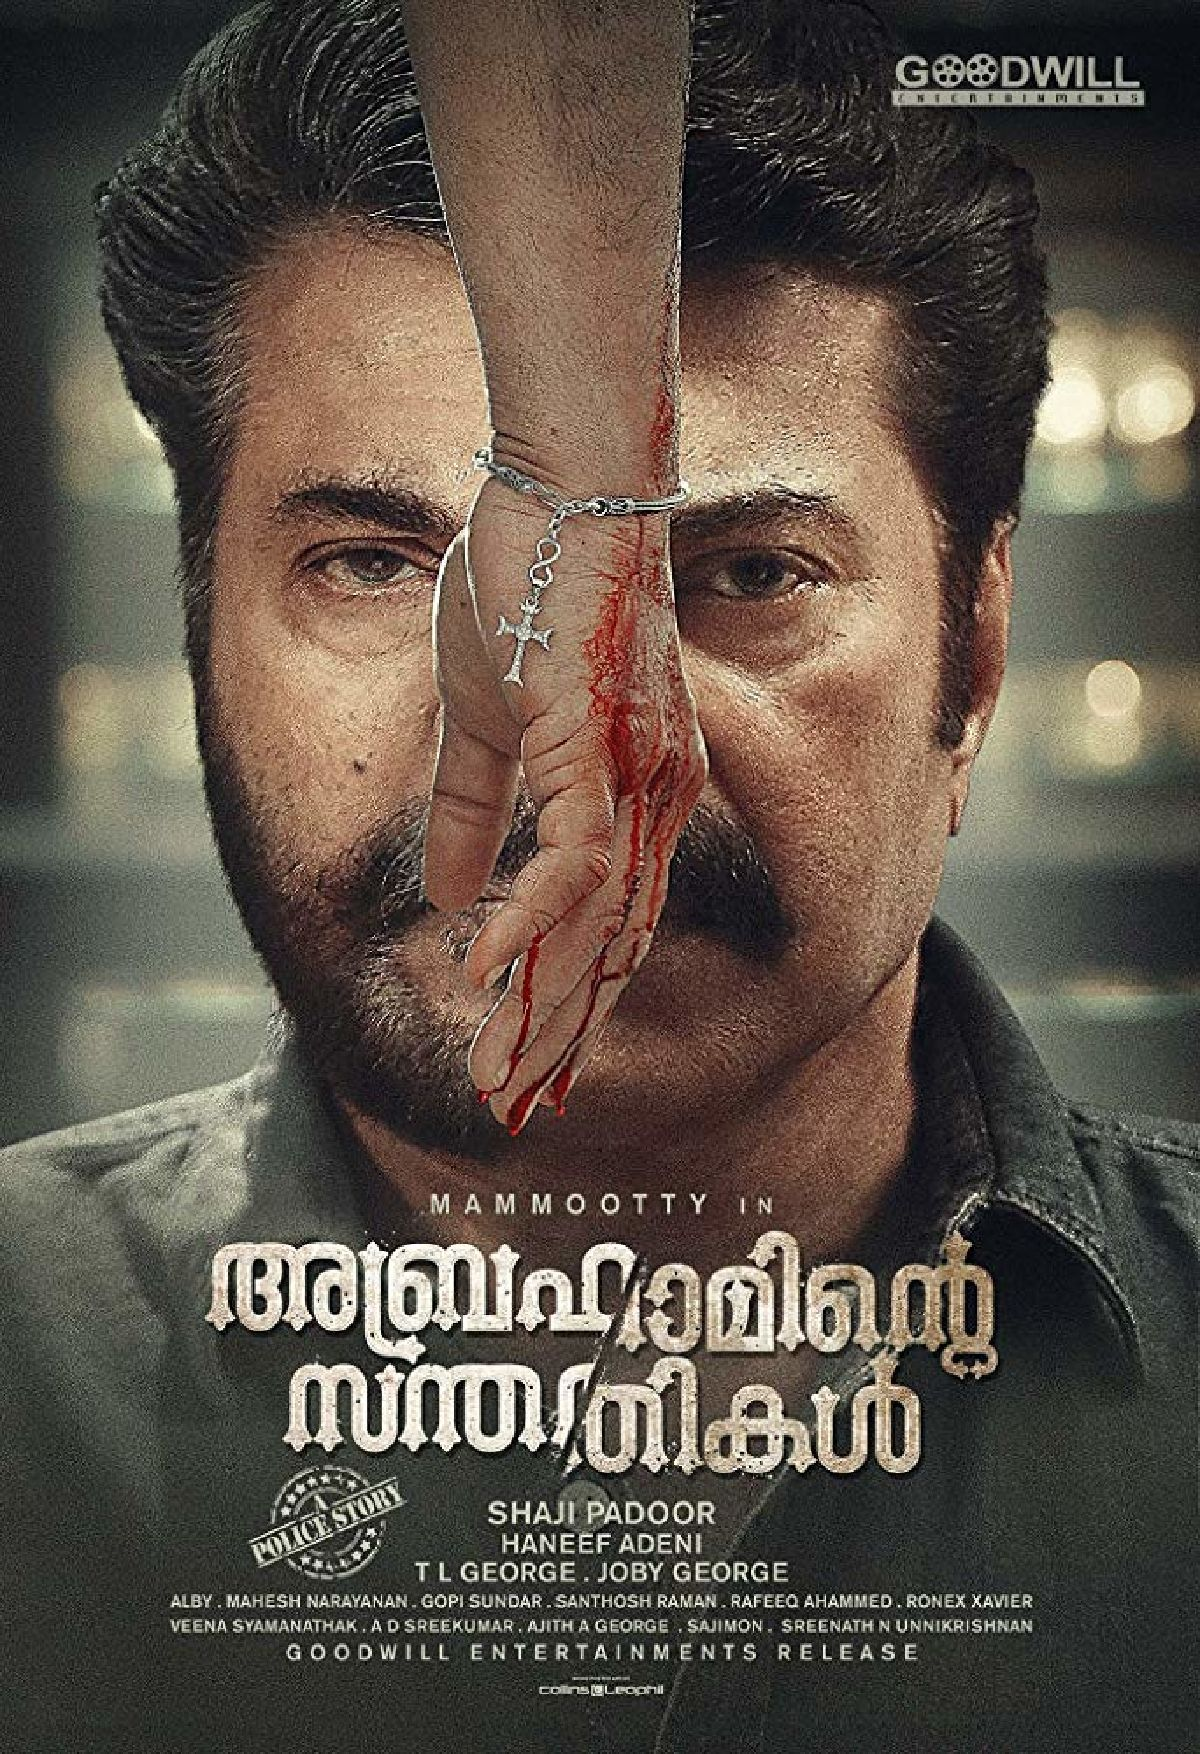 'Abrahaminte Santhathikal' movie poster